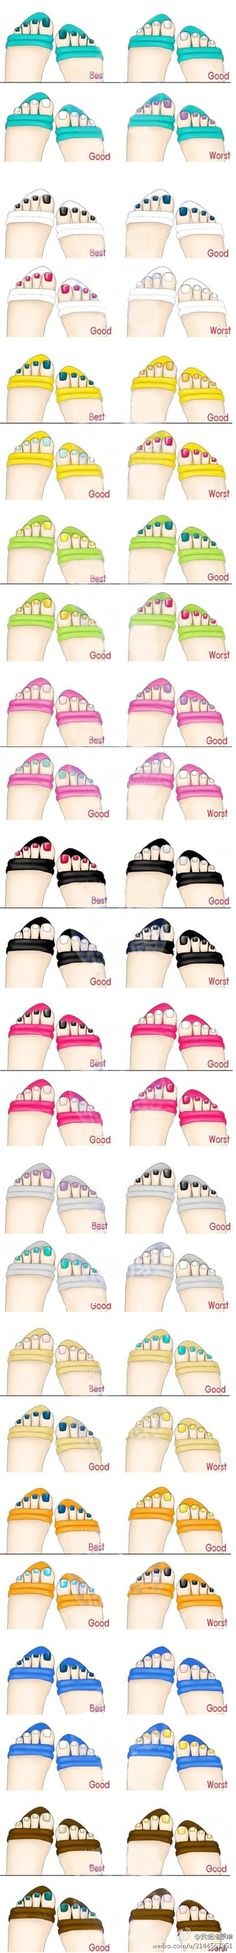 Toenail and flip-flop colour guide